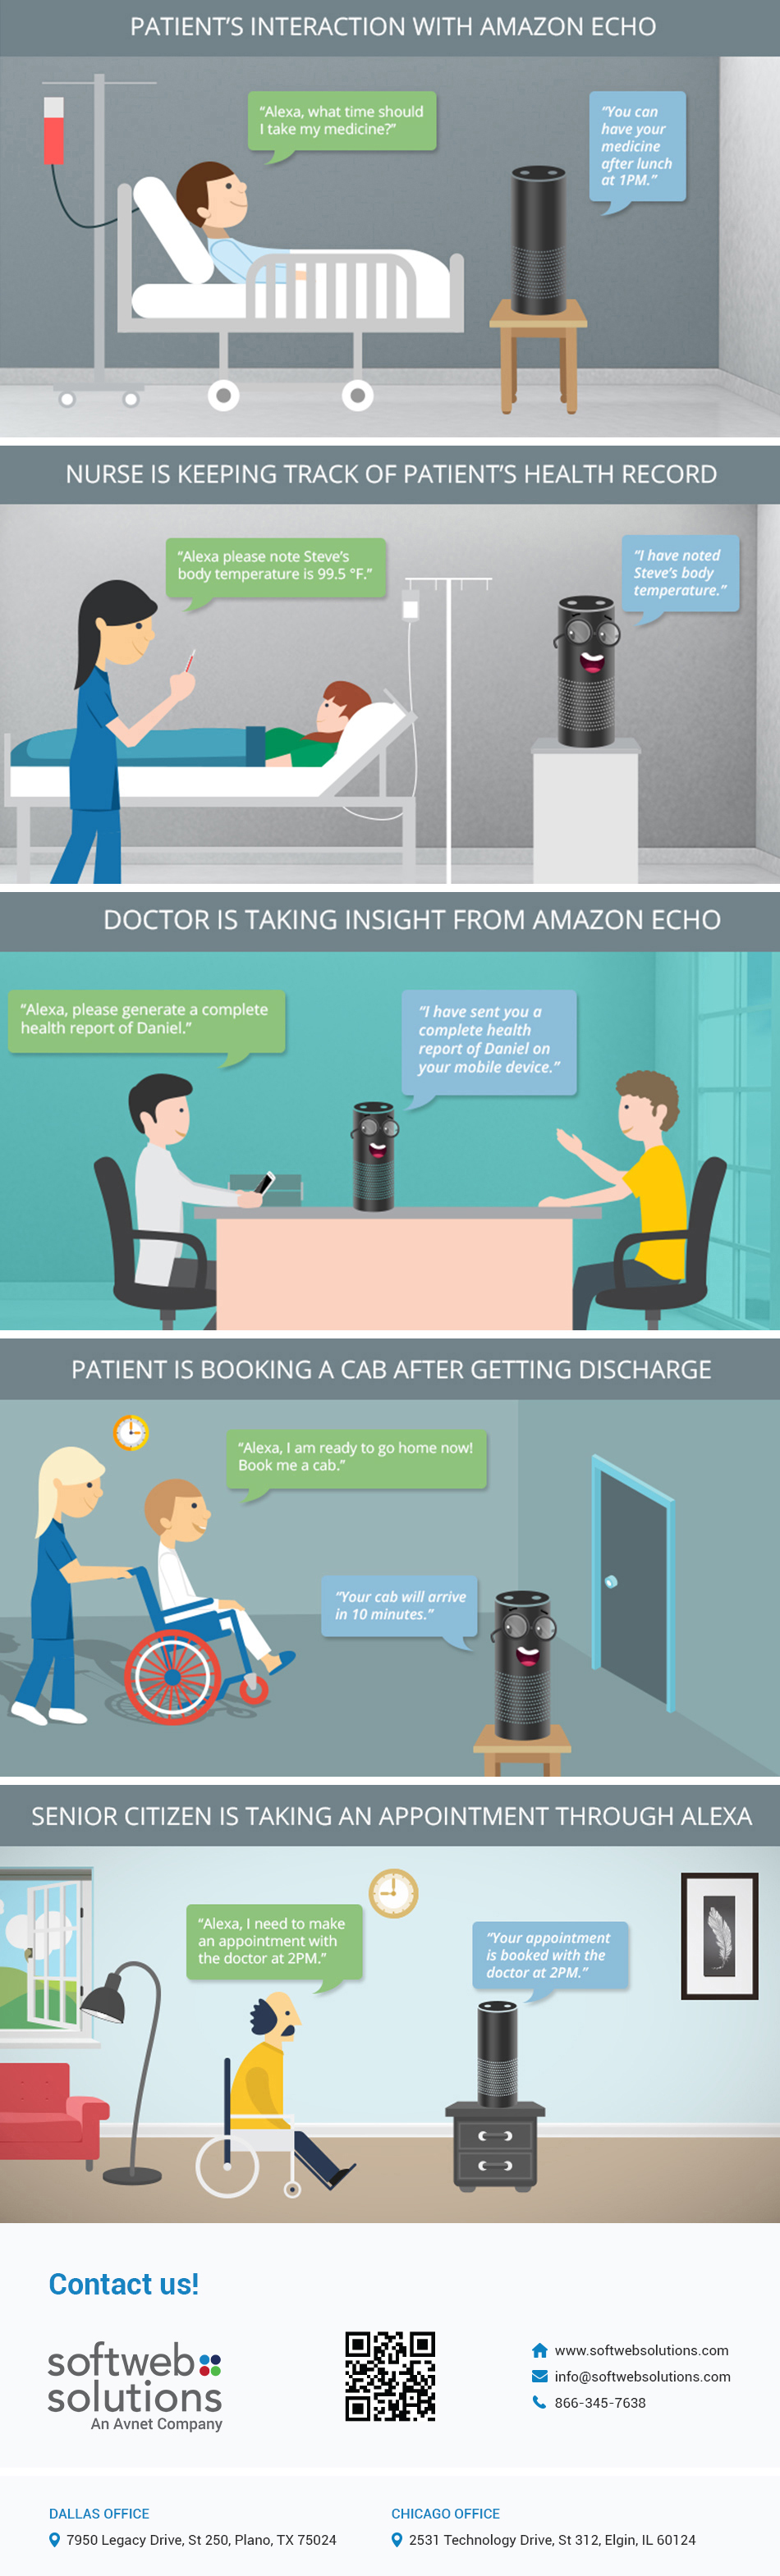 Amazon Echo for Healthcare